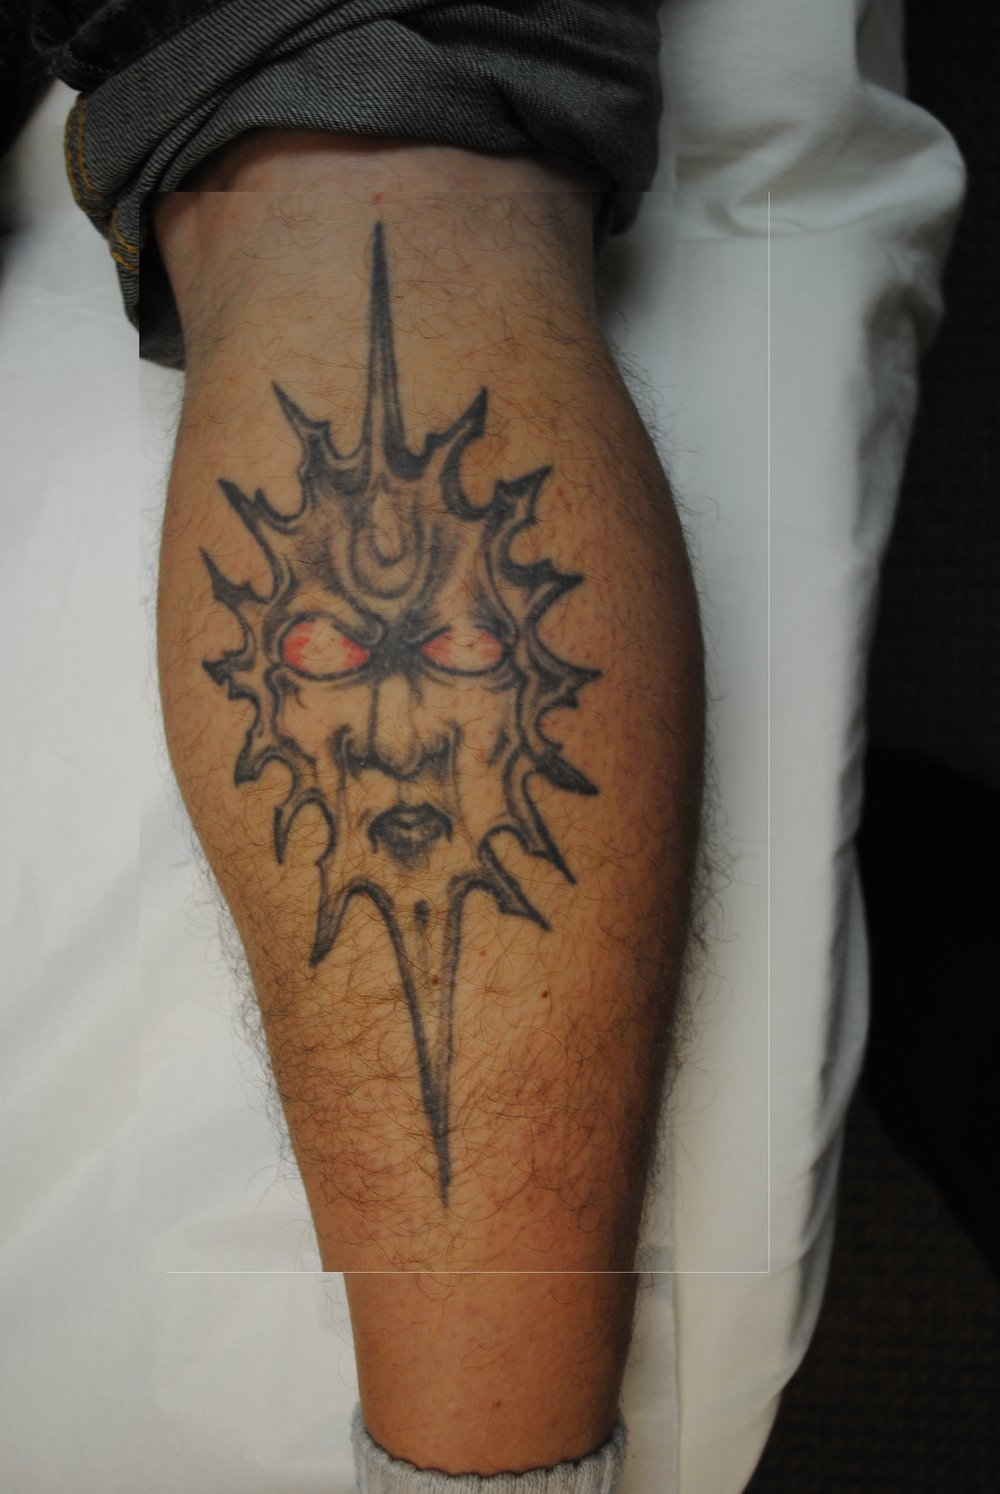 21-Tattoo-Removal-Oregon-Before.jpg